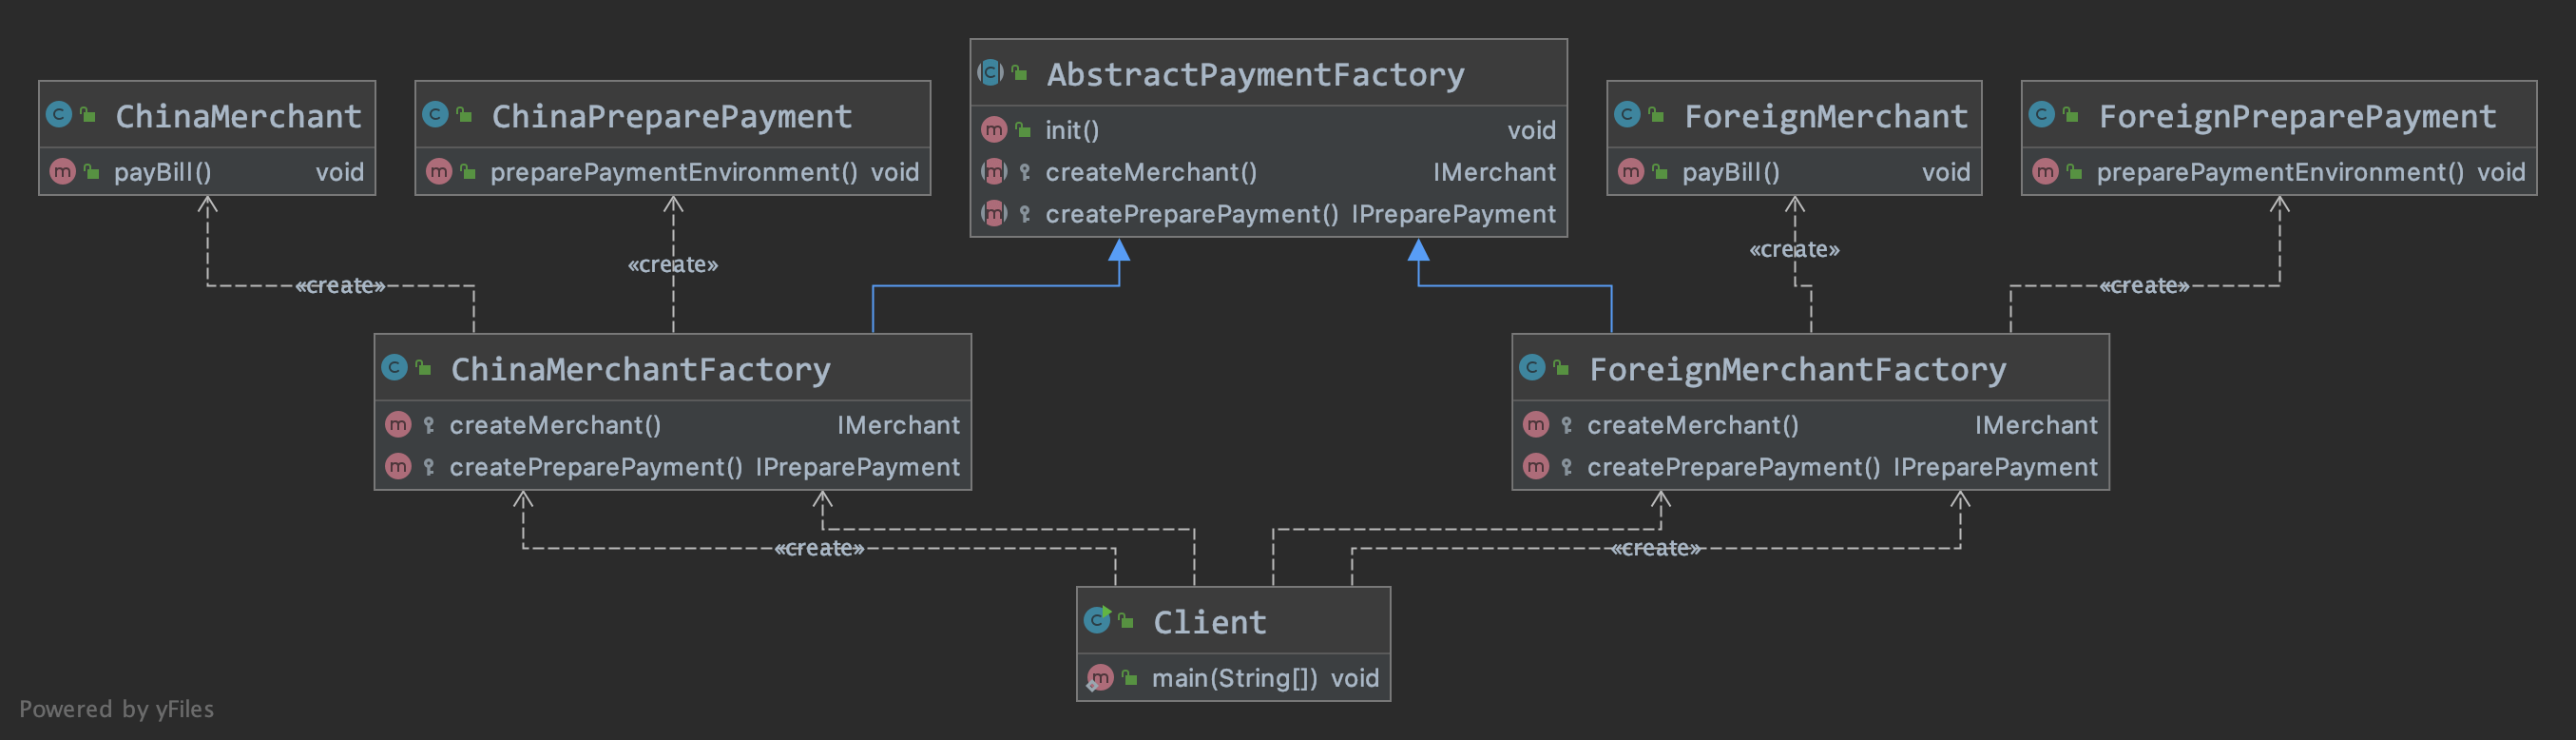 payment_abstract_factory